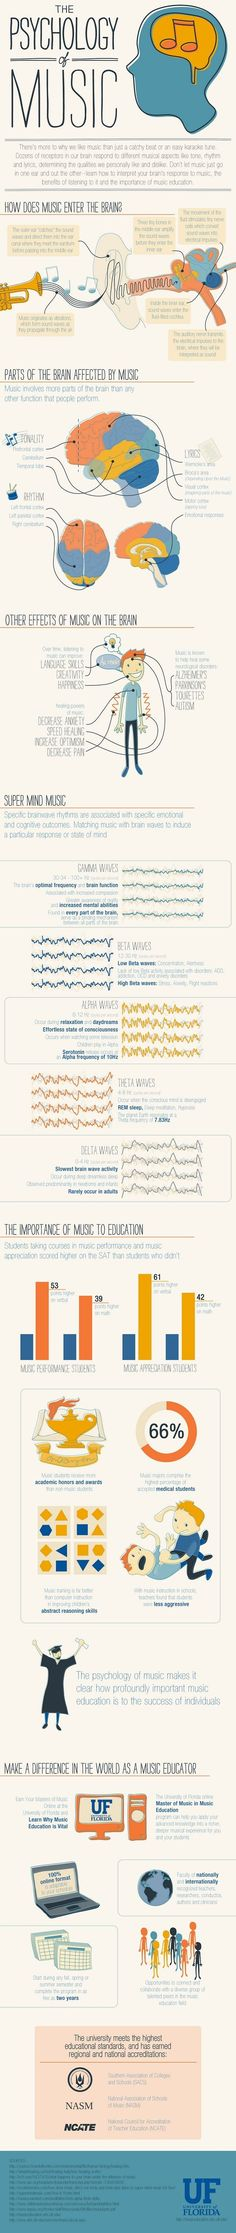 The psychology of music #infographic  Huh, very cool!  Putting together a short performance piece for a ski coaching project aimed at 7-9 yr old range... :)